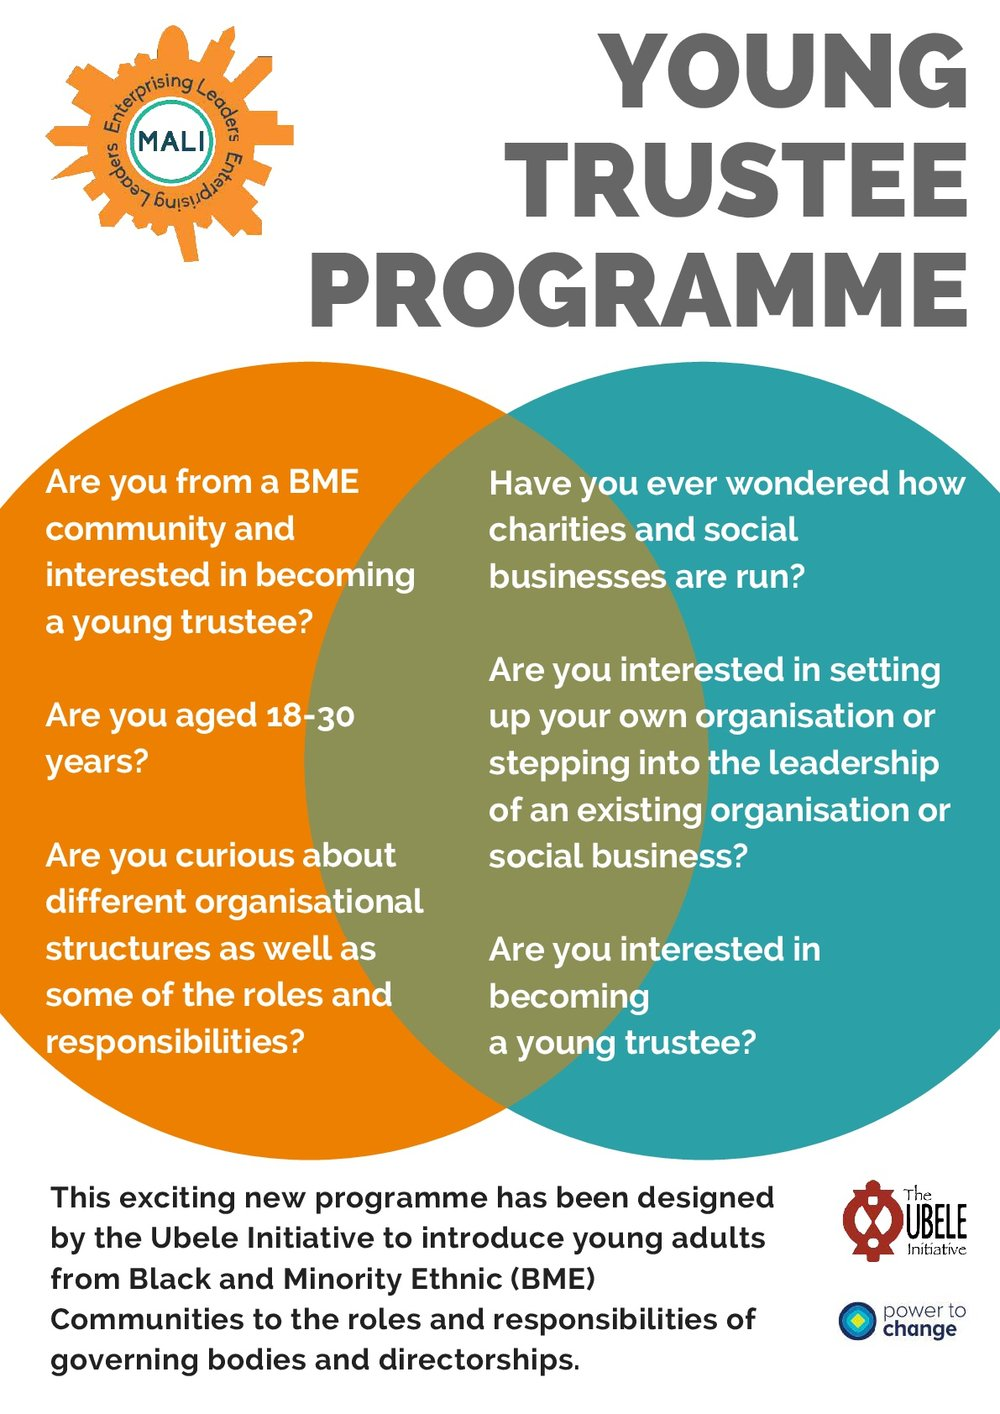 Young-Trustee-Programme-flyer-001.jpg